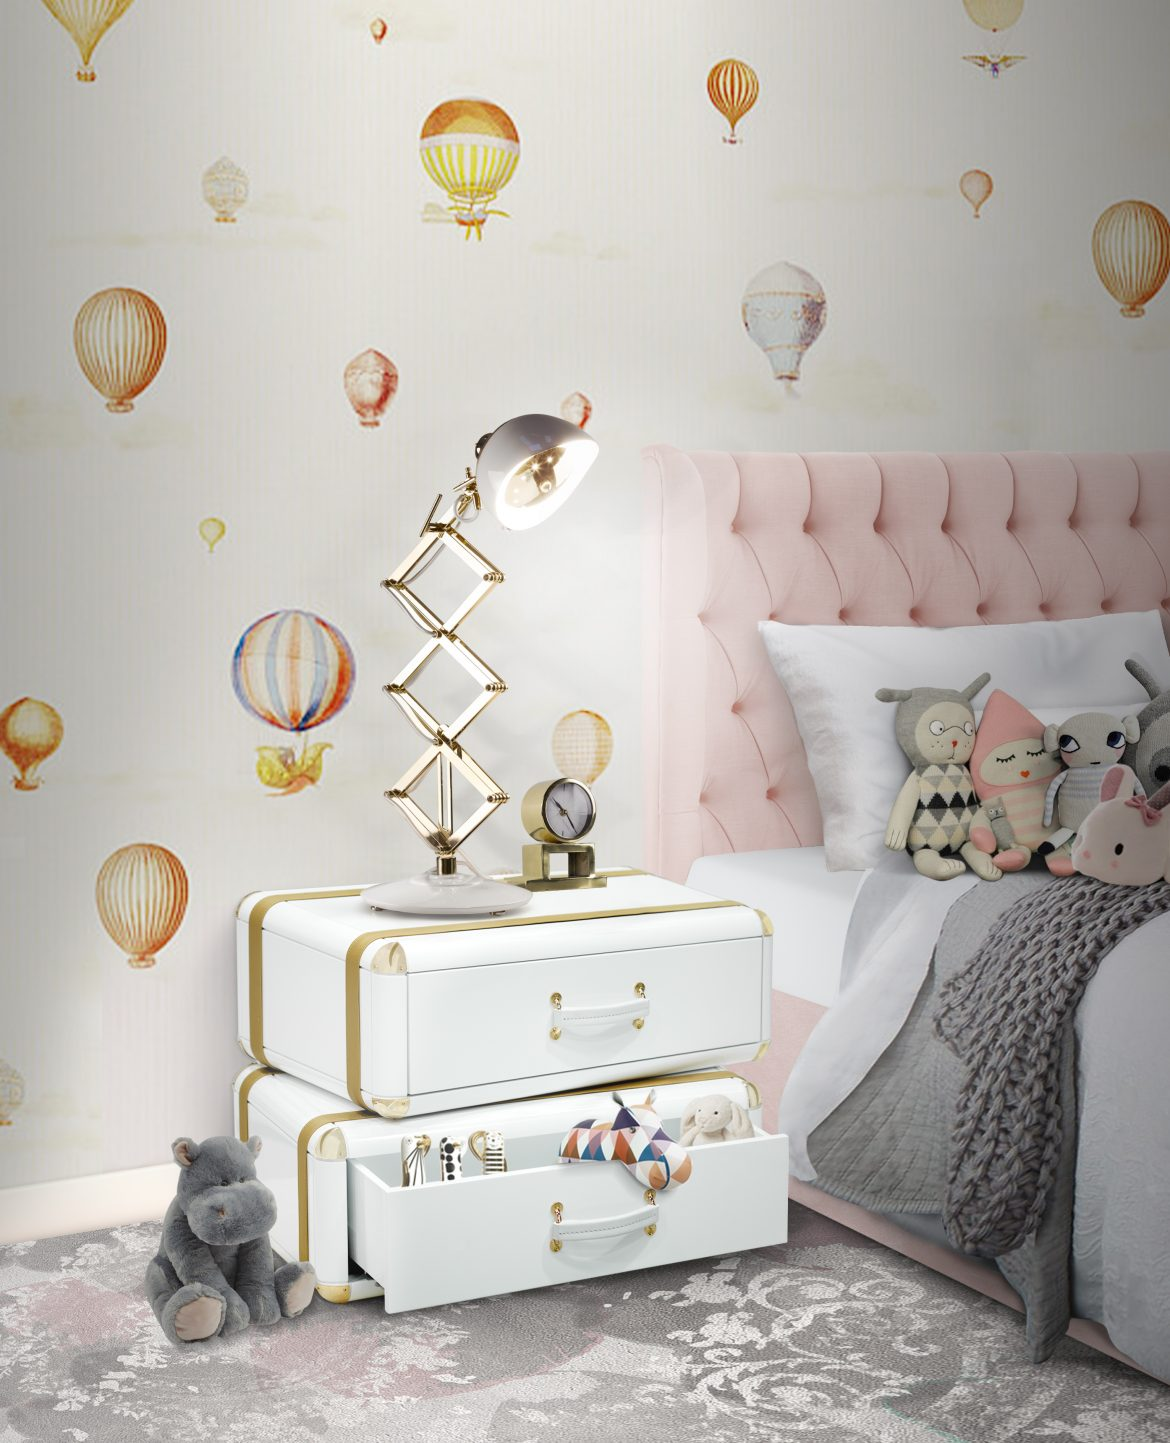 The Coolest Decorating Ideas For Your Kids Bedroom Design Kids Bedroom Design The Coolest Decorating Ideas For Your Kids Bedroom Design fantasy air nightstand circu magical furniture 1cc35d3254fcbe00194196fce1f99b99f